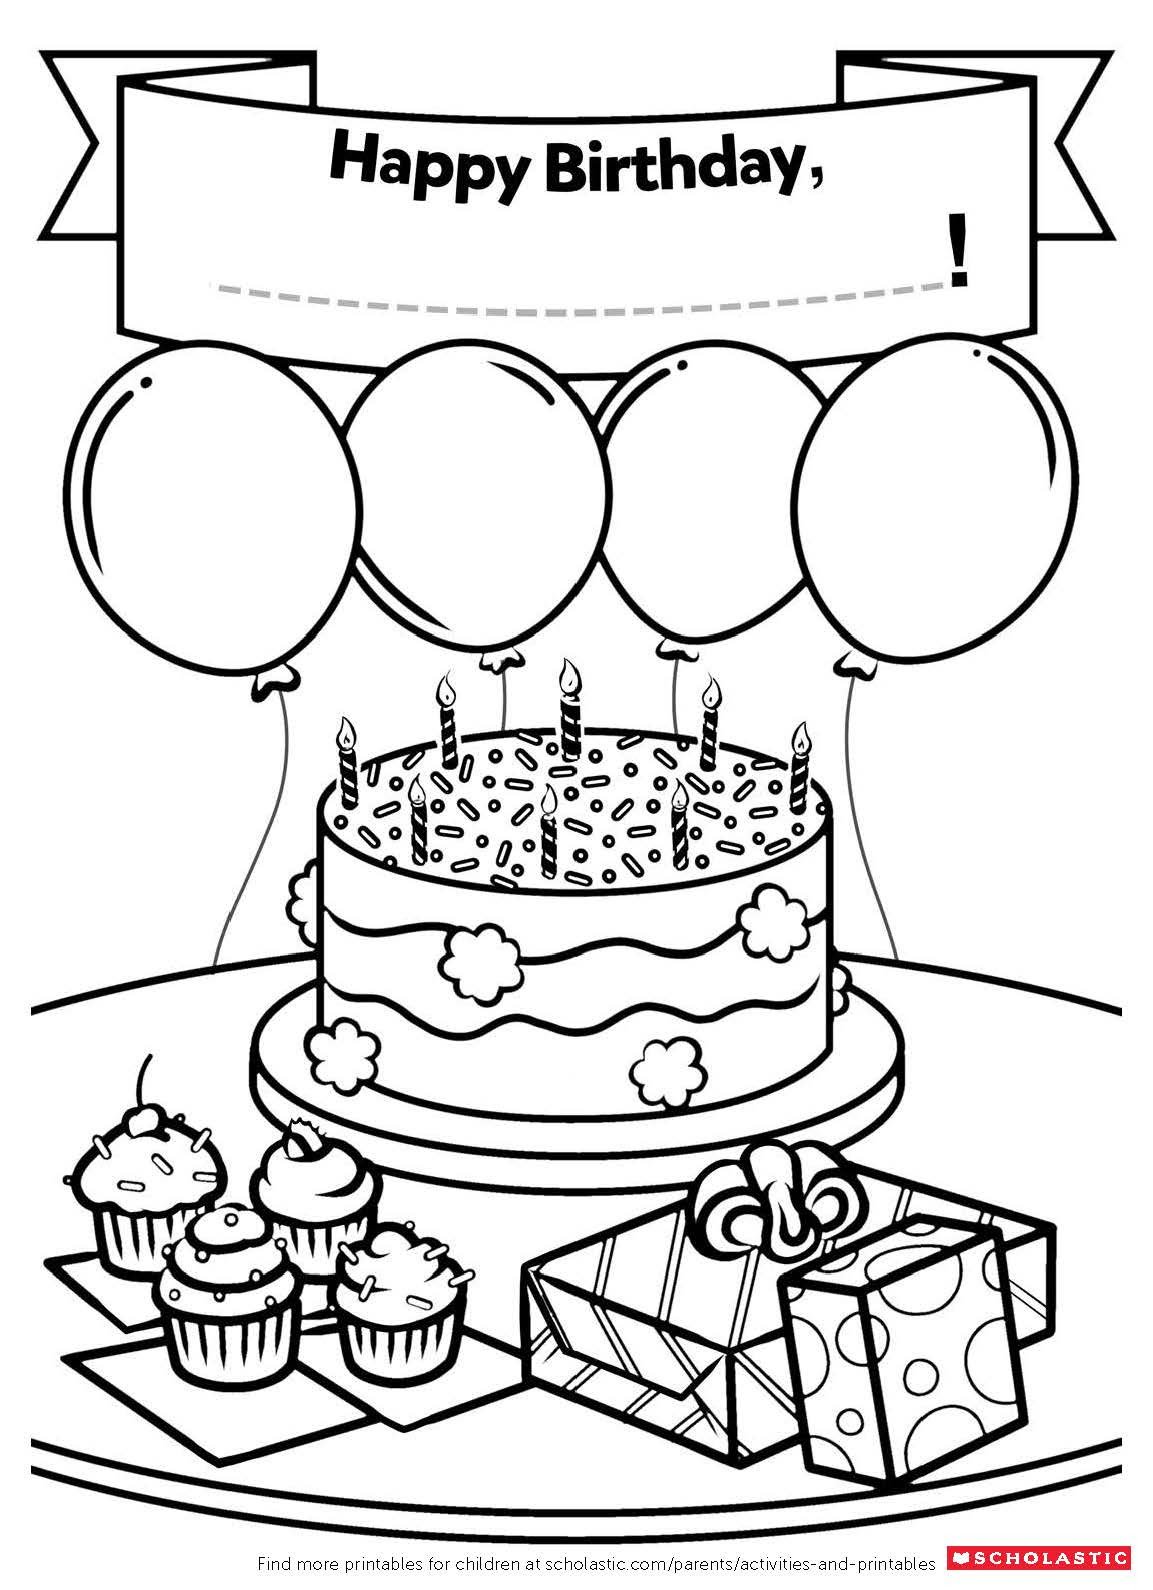 A Homemade Birthday Card | Worksheets and Printables ...